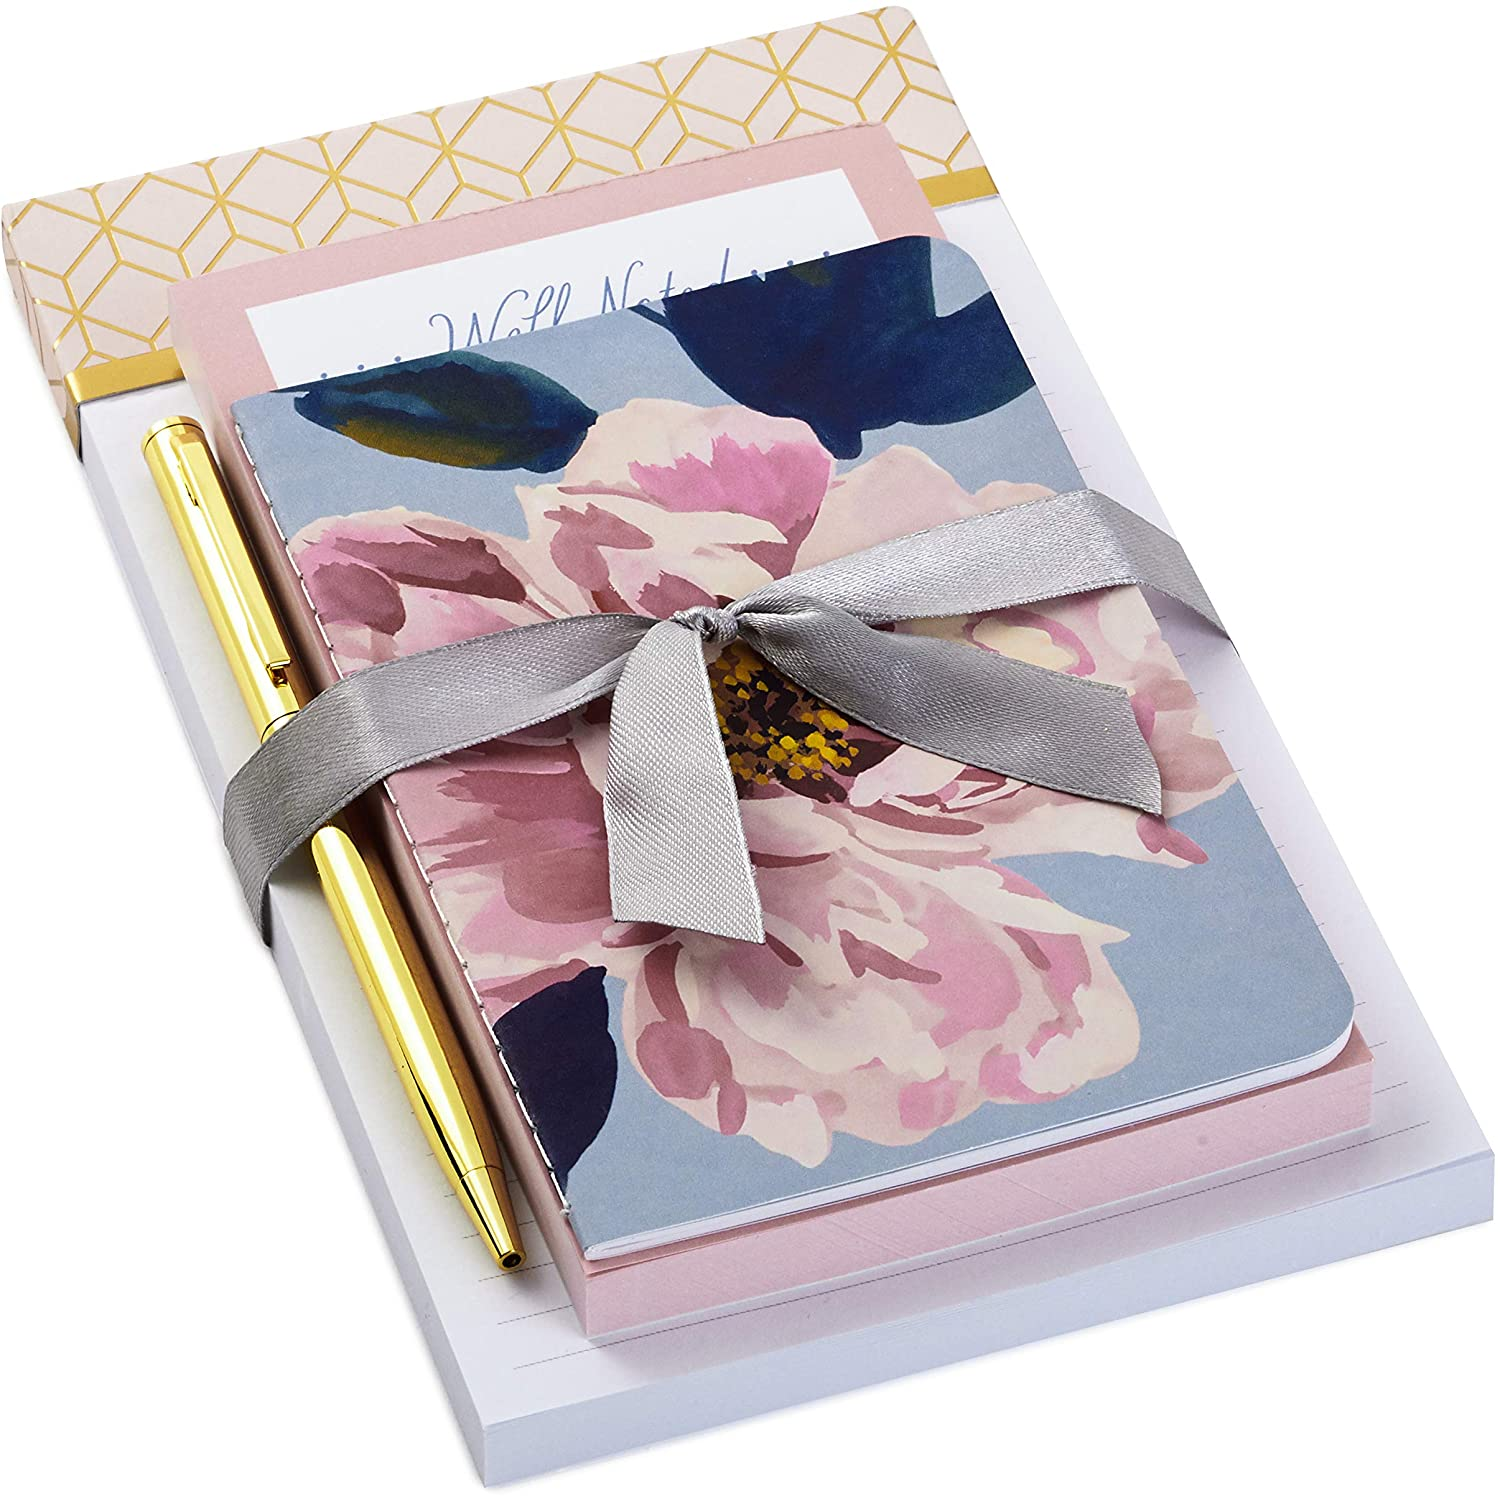 Hallmark Notepad Bundle with Pen, Pretty Pinks (3 Notepads in Assorted Sizes with Gold Pen)